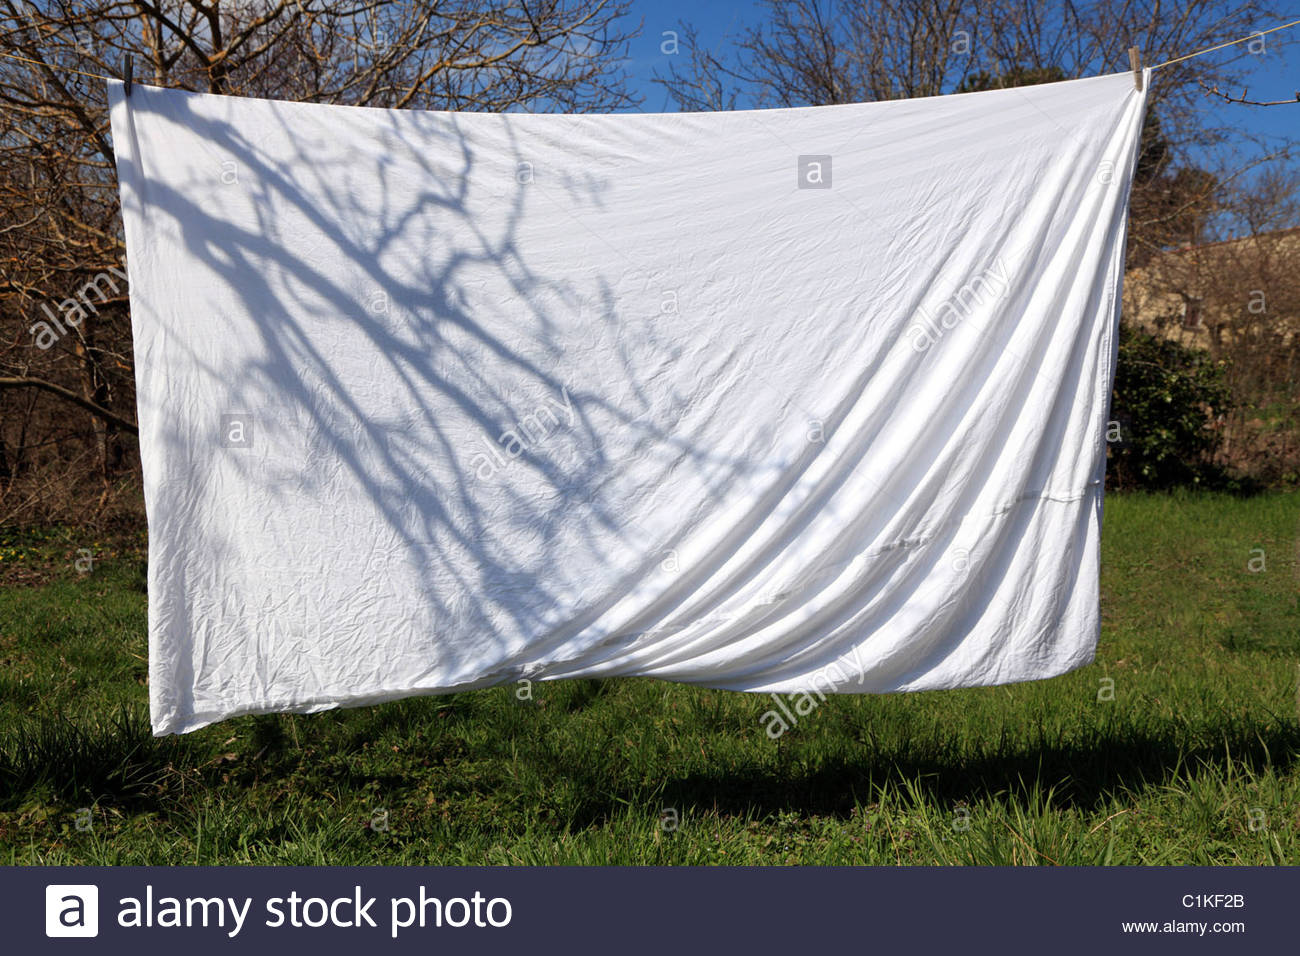 Bed sheet drying outside on washing line stock photo for Como blanquear cortinas